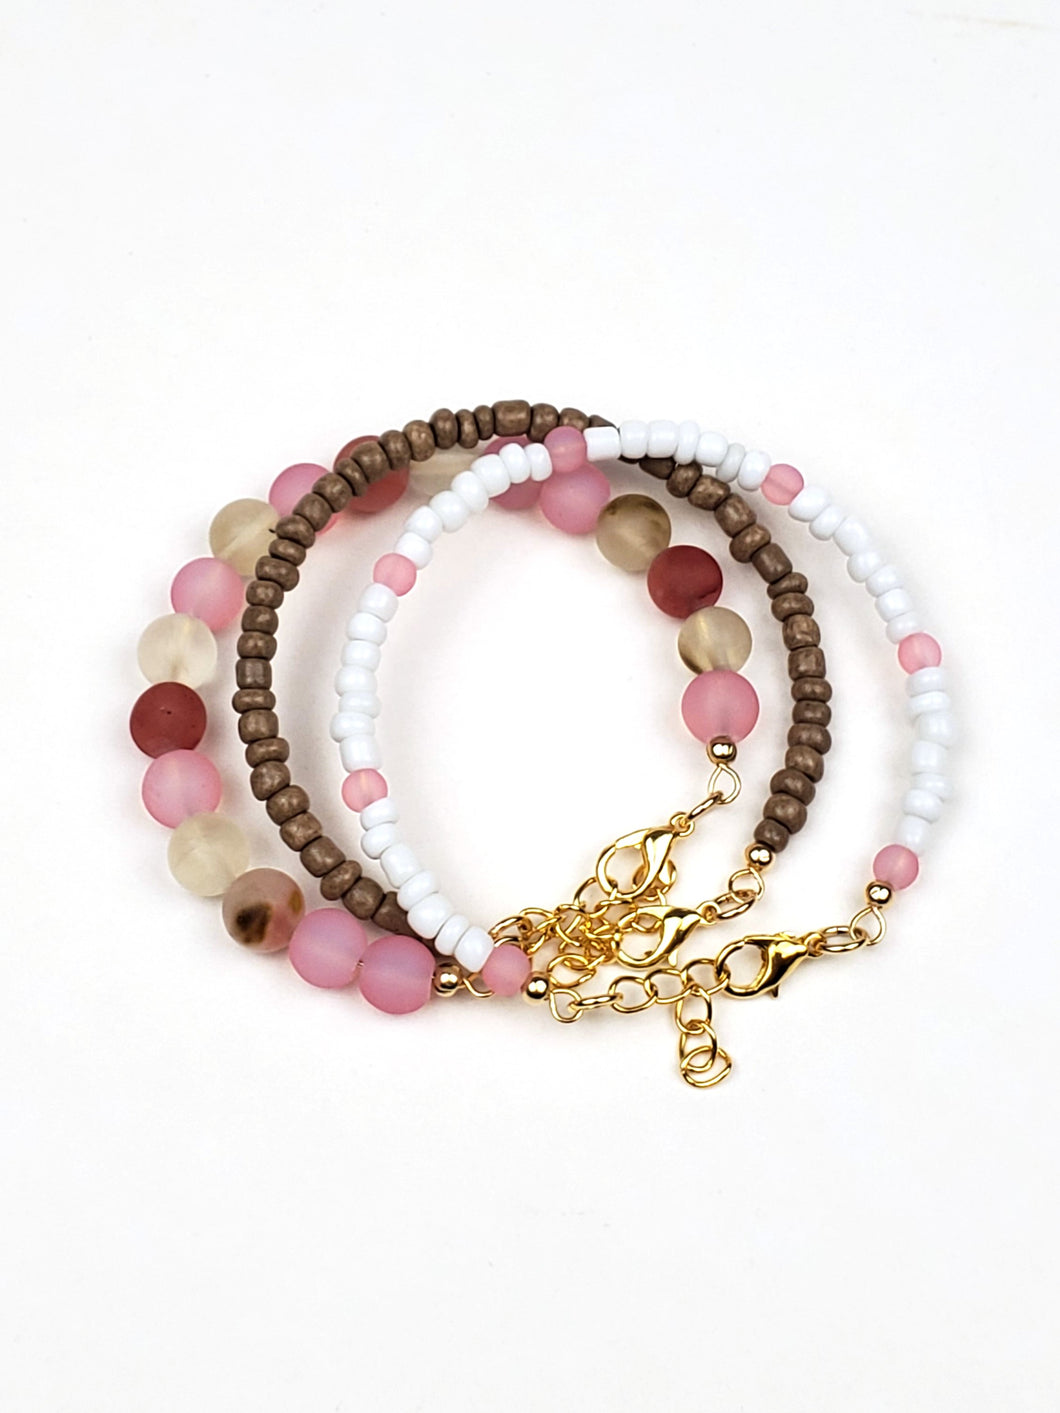 Cherry Blossom Beaded Gold Bracelet Stack | Daizeez